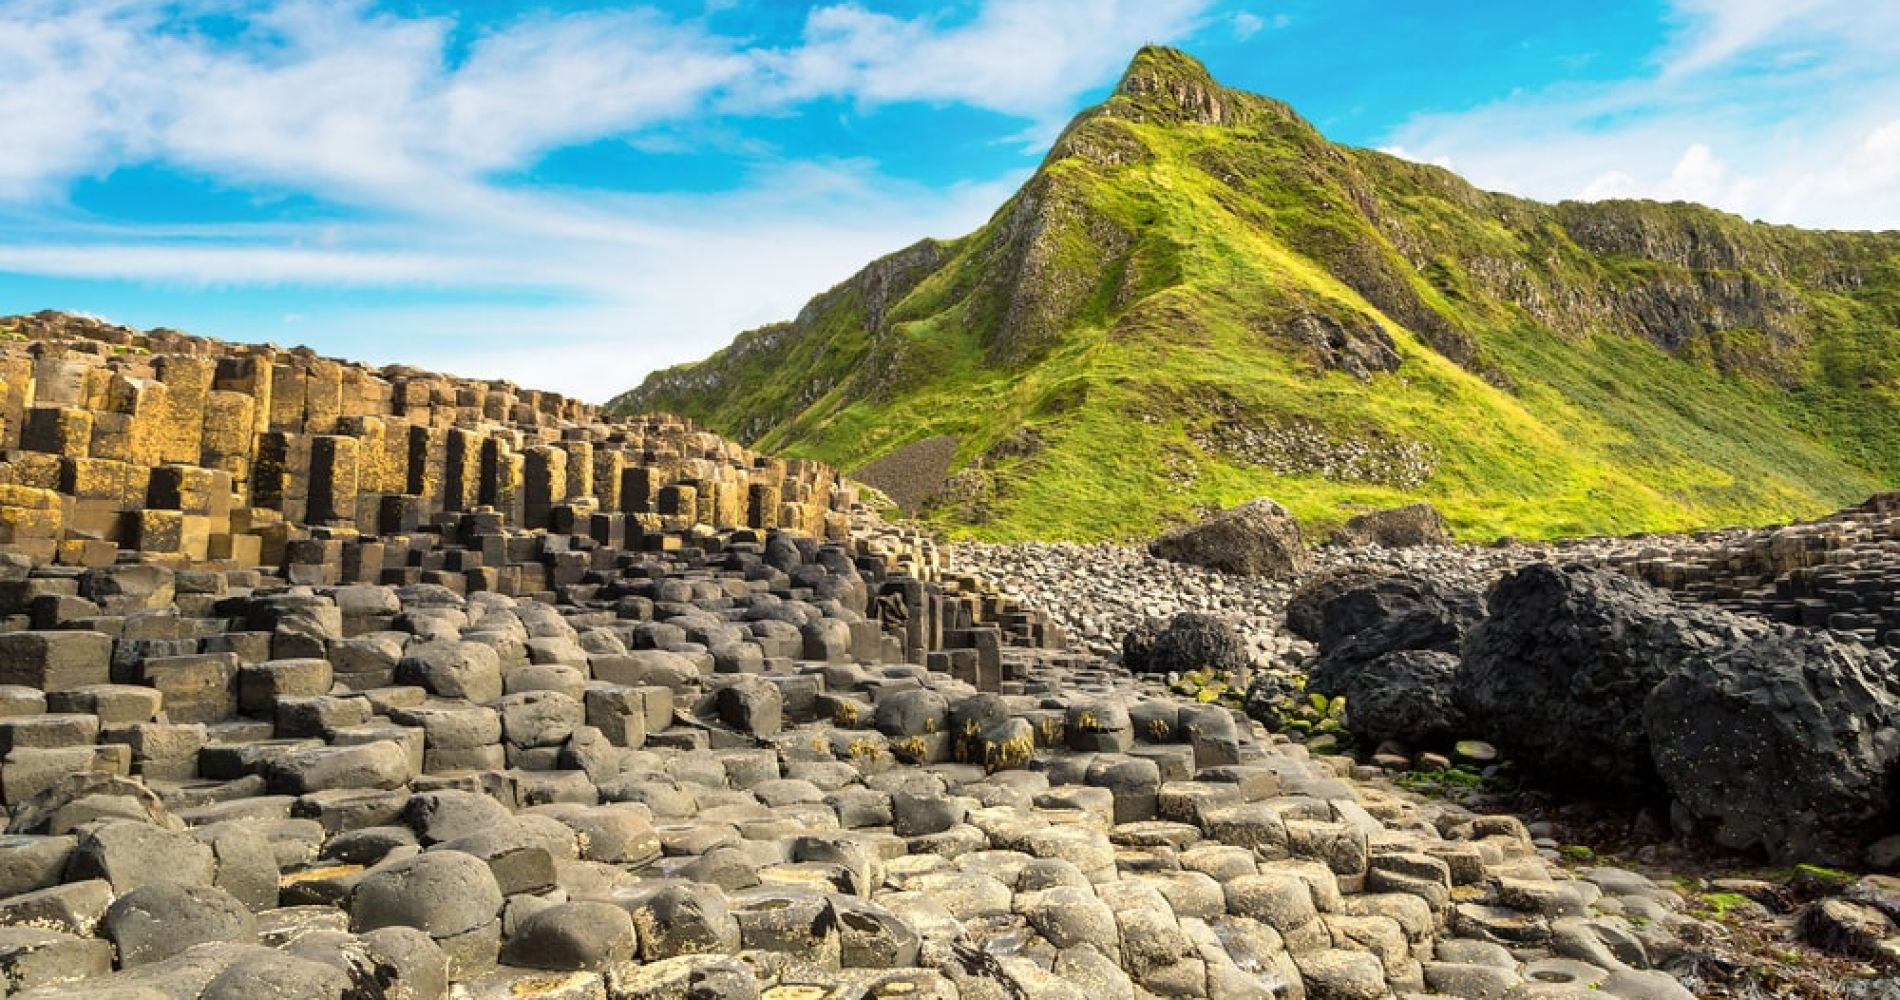 Visit Giant's Causeway in Northern Ireland